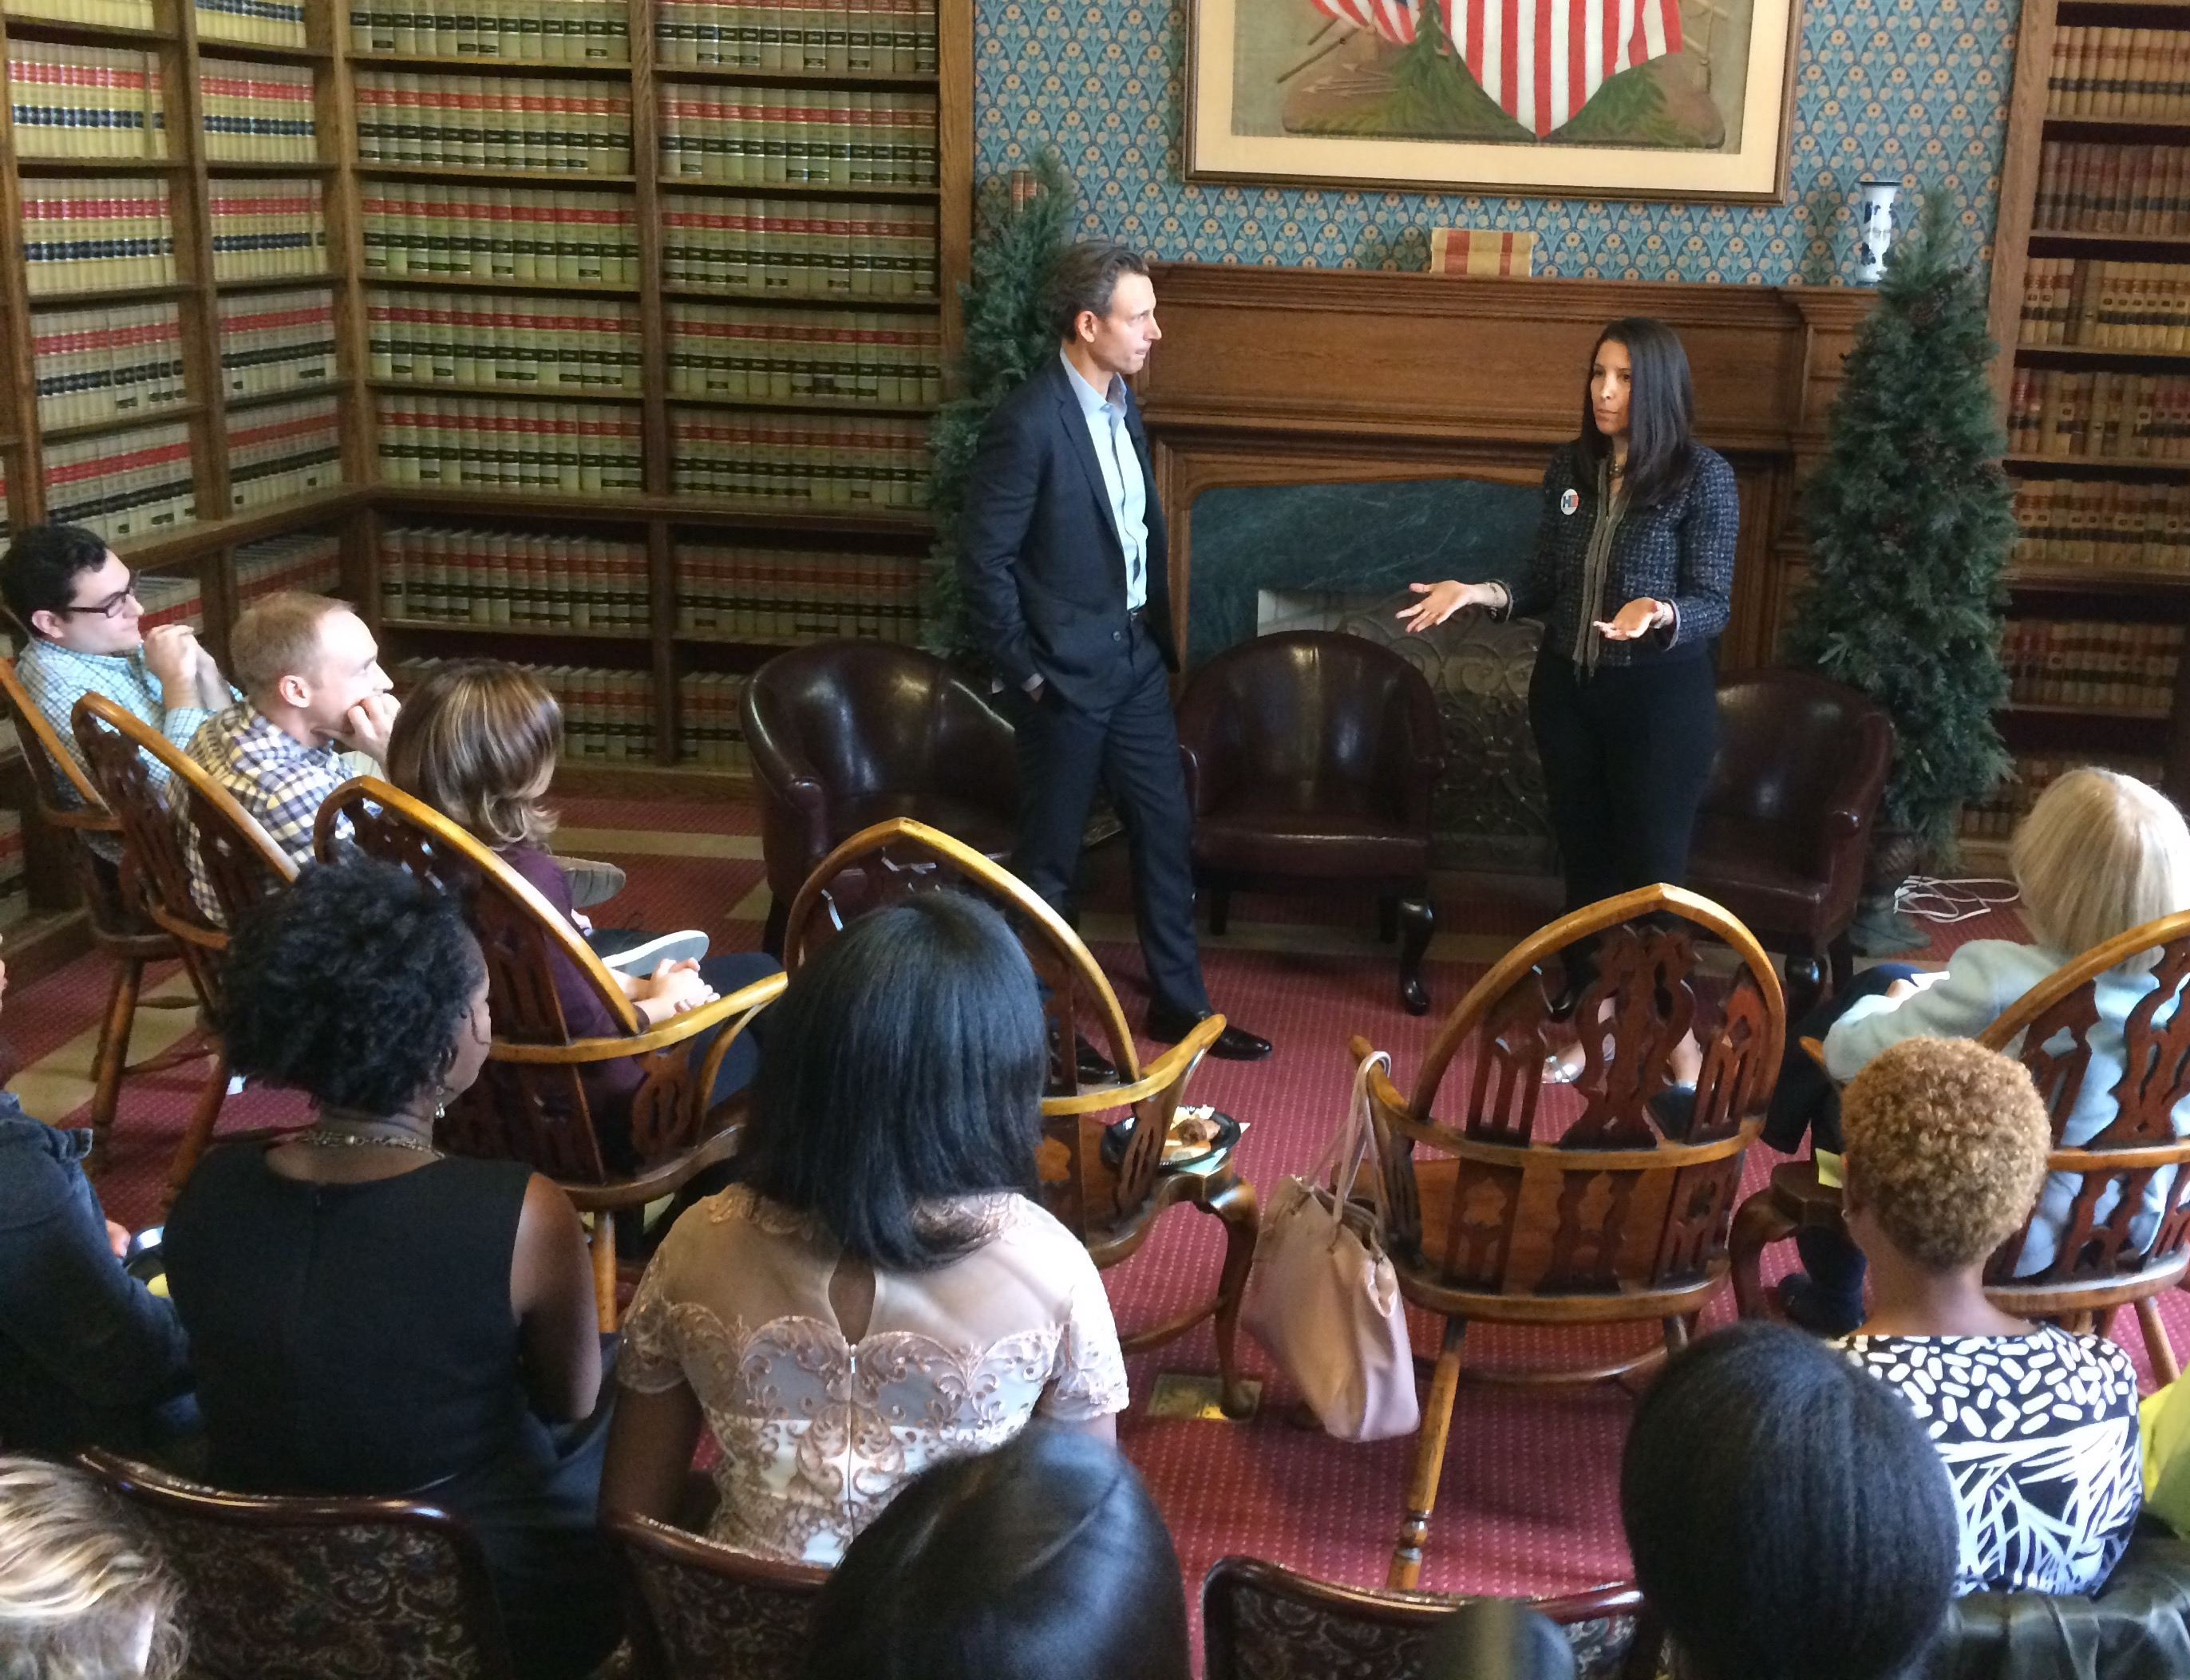 """Scandal"" Actor Tony Goldwyn and Firm President Sheryl Axelrod engaging the crowd in a discussion on voter protection."